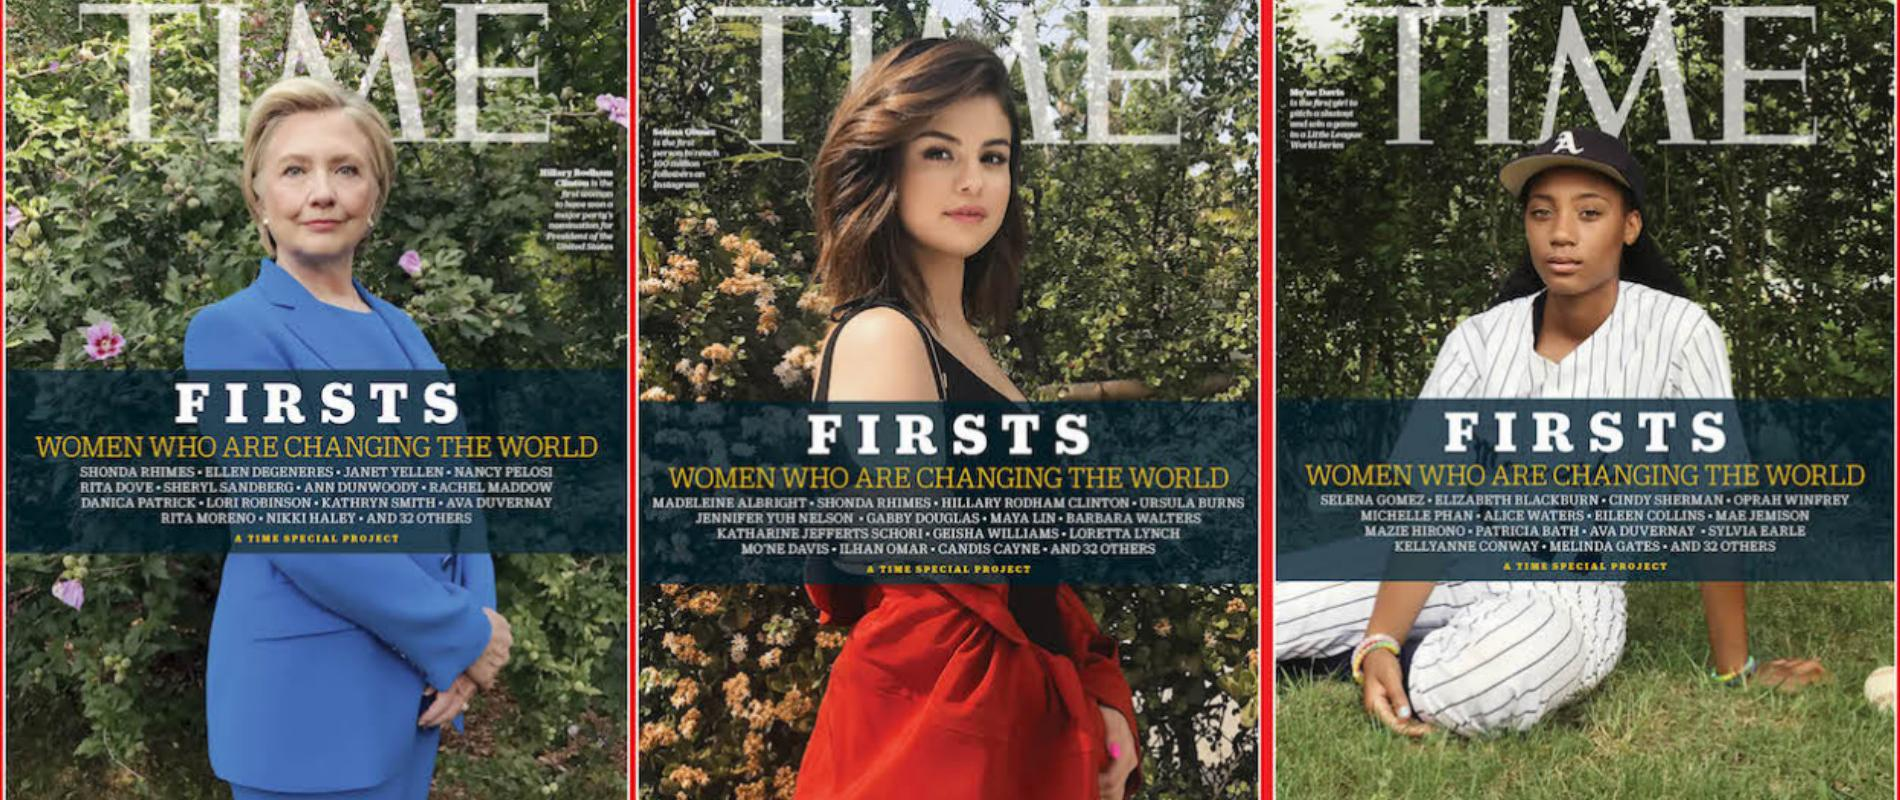 firsts-la-campagne-de-time-magazine